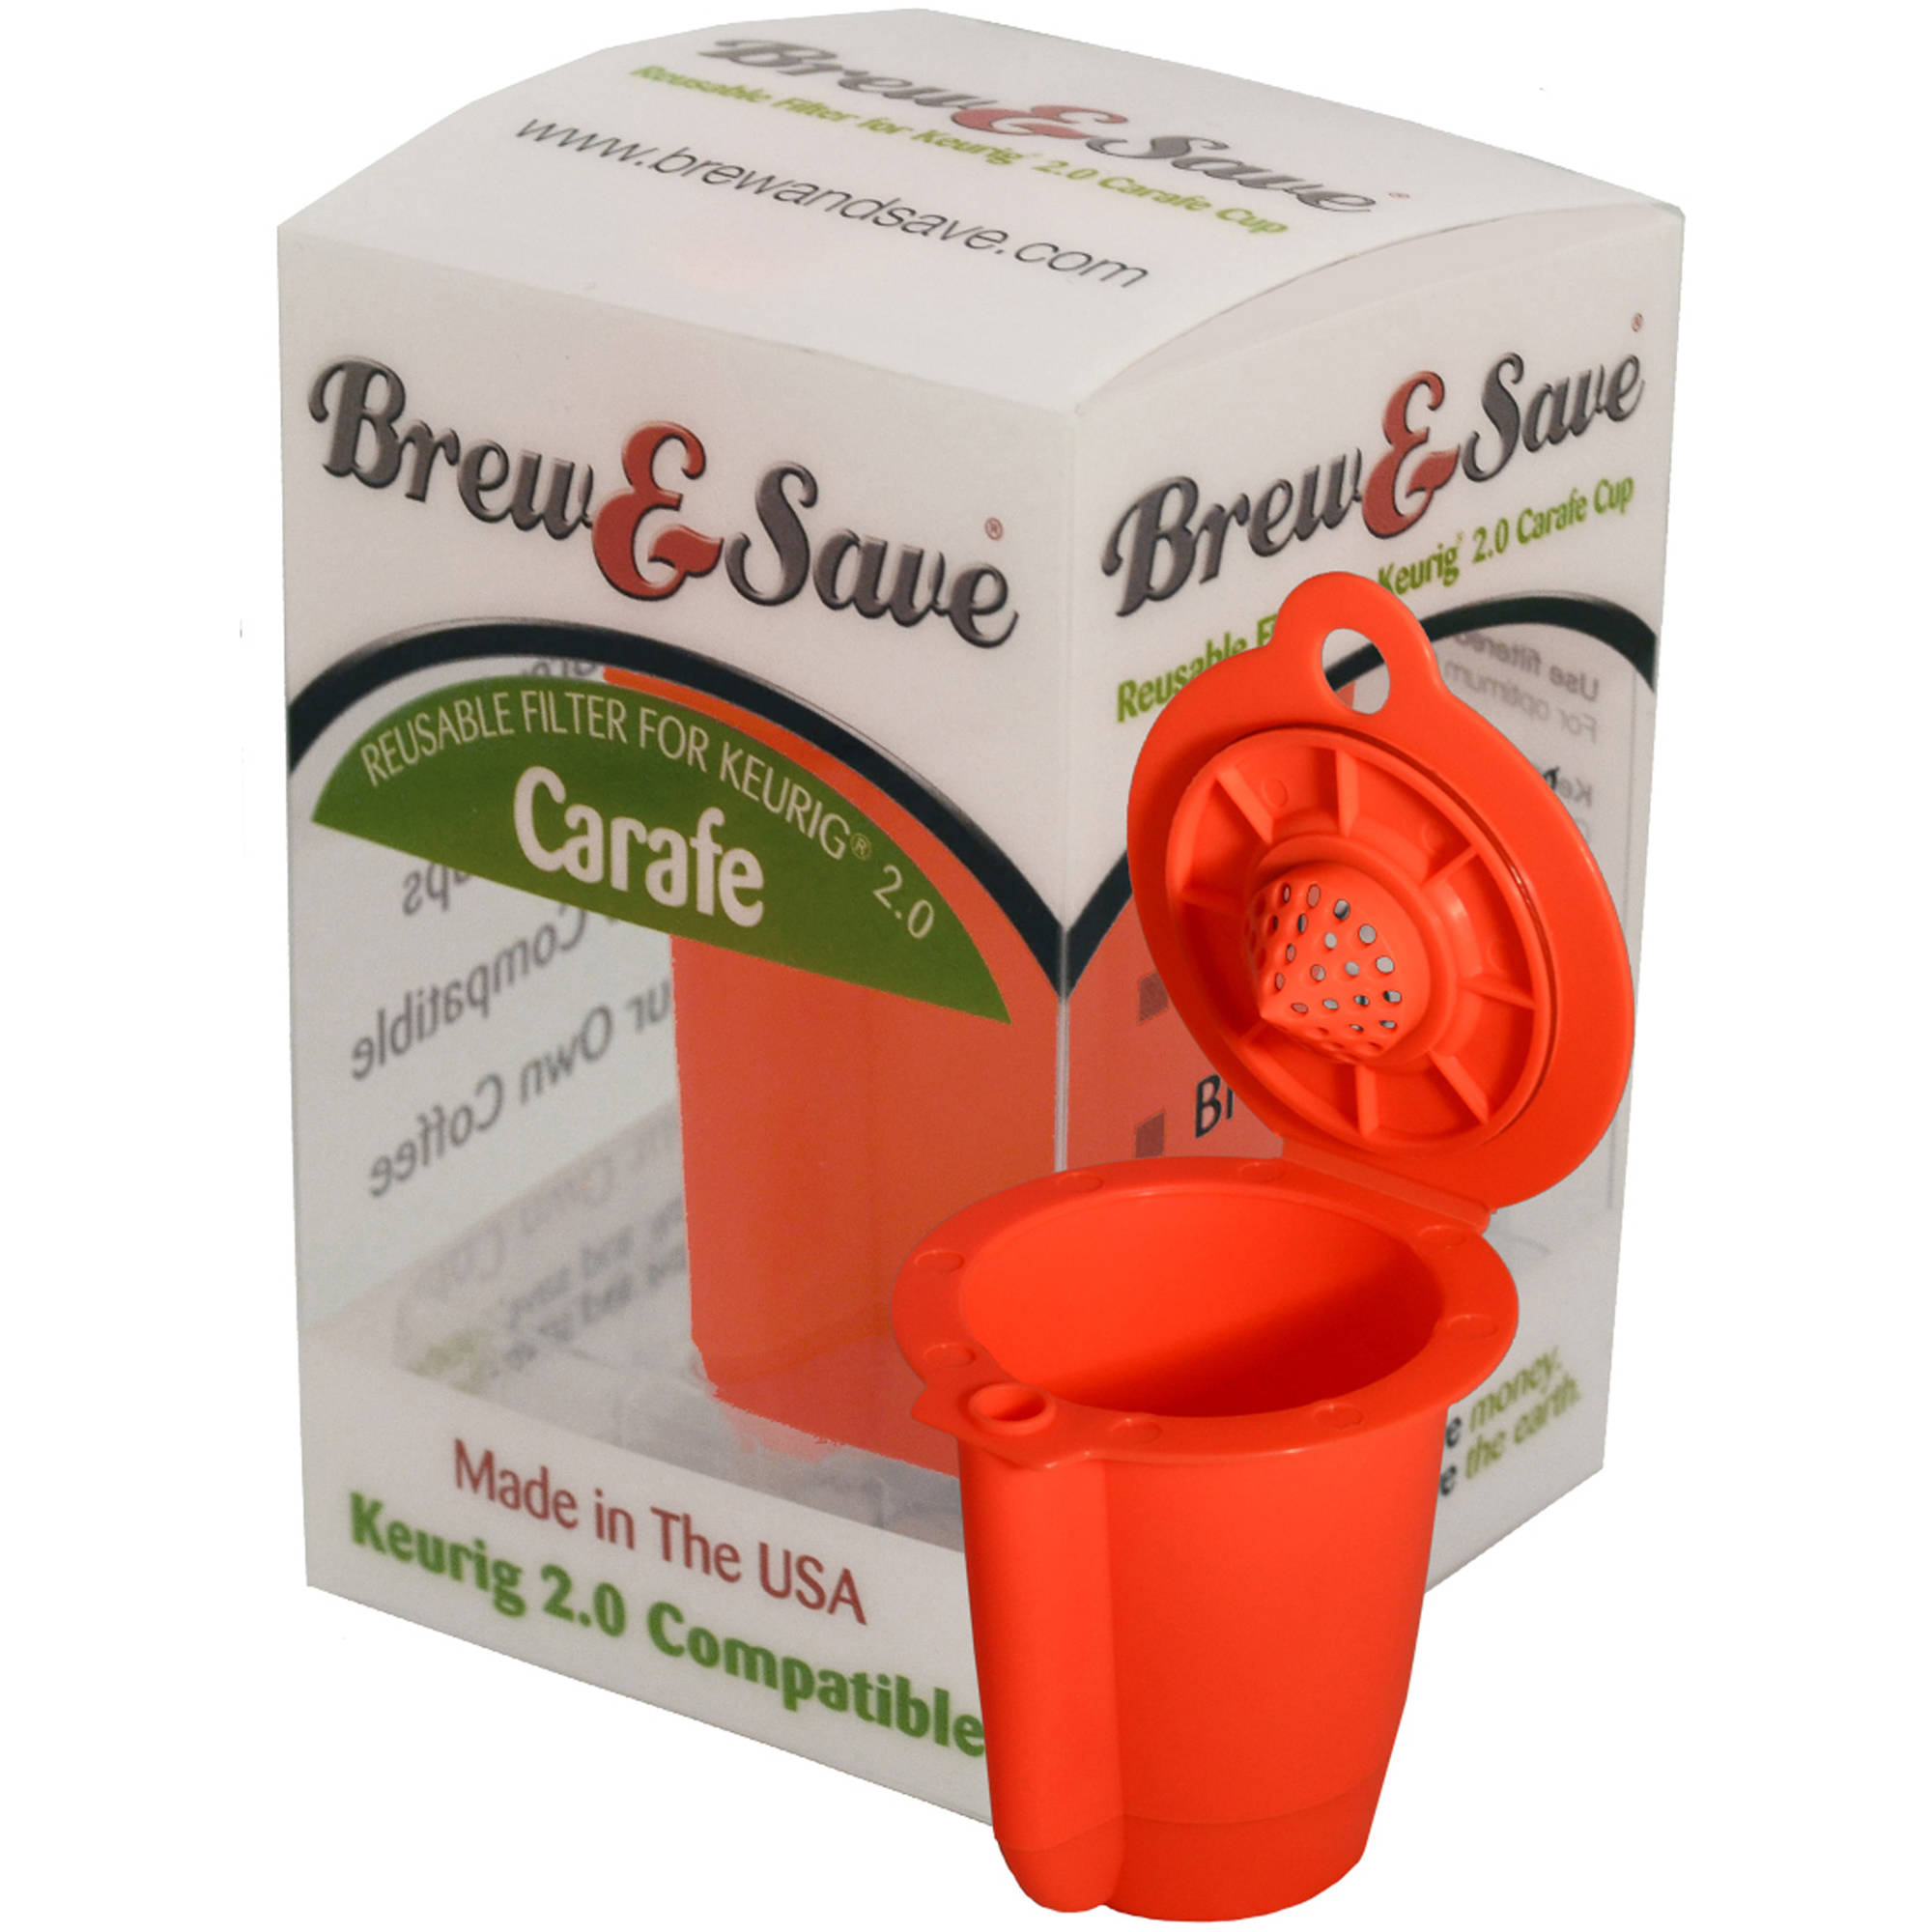 Brew and Save Reusable Carafe Coffee Filter for Keurig 2.0 Brewer